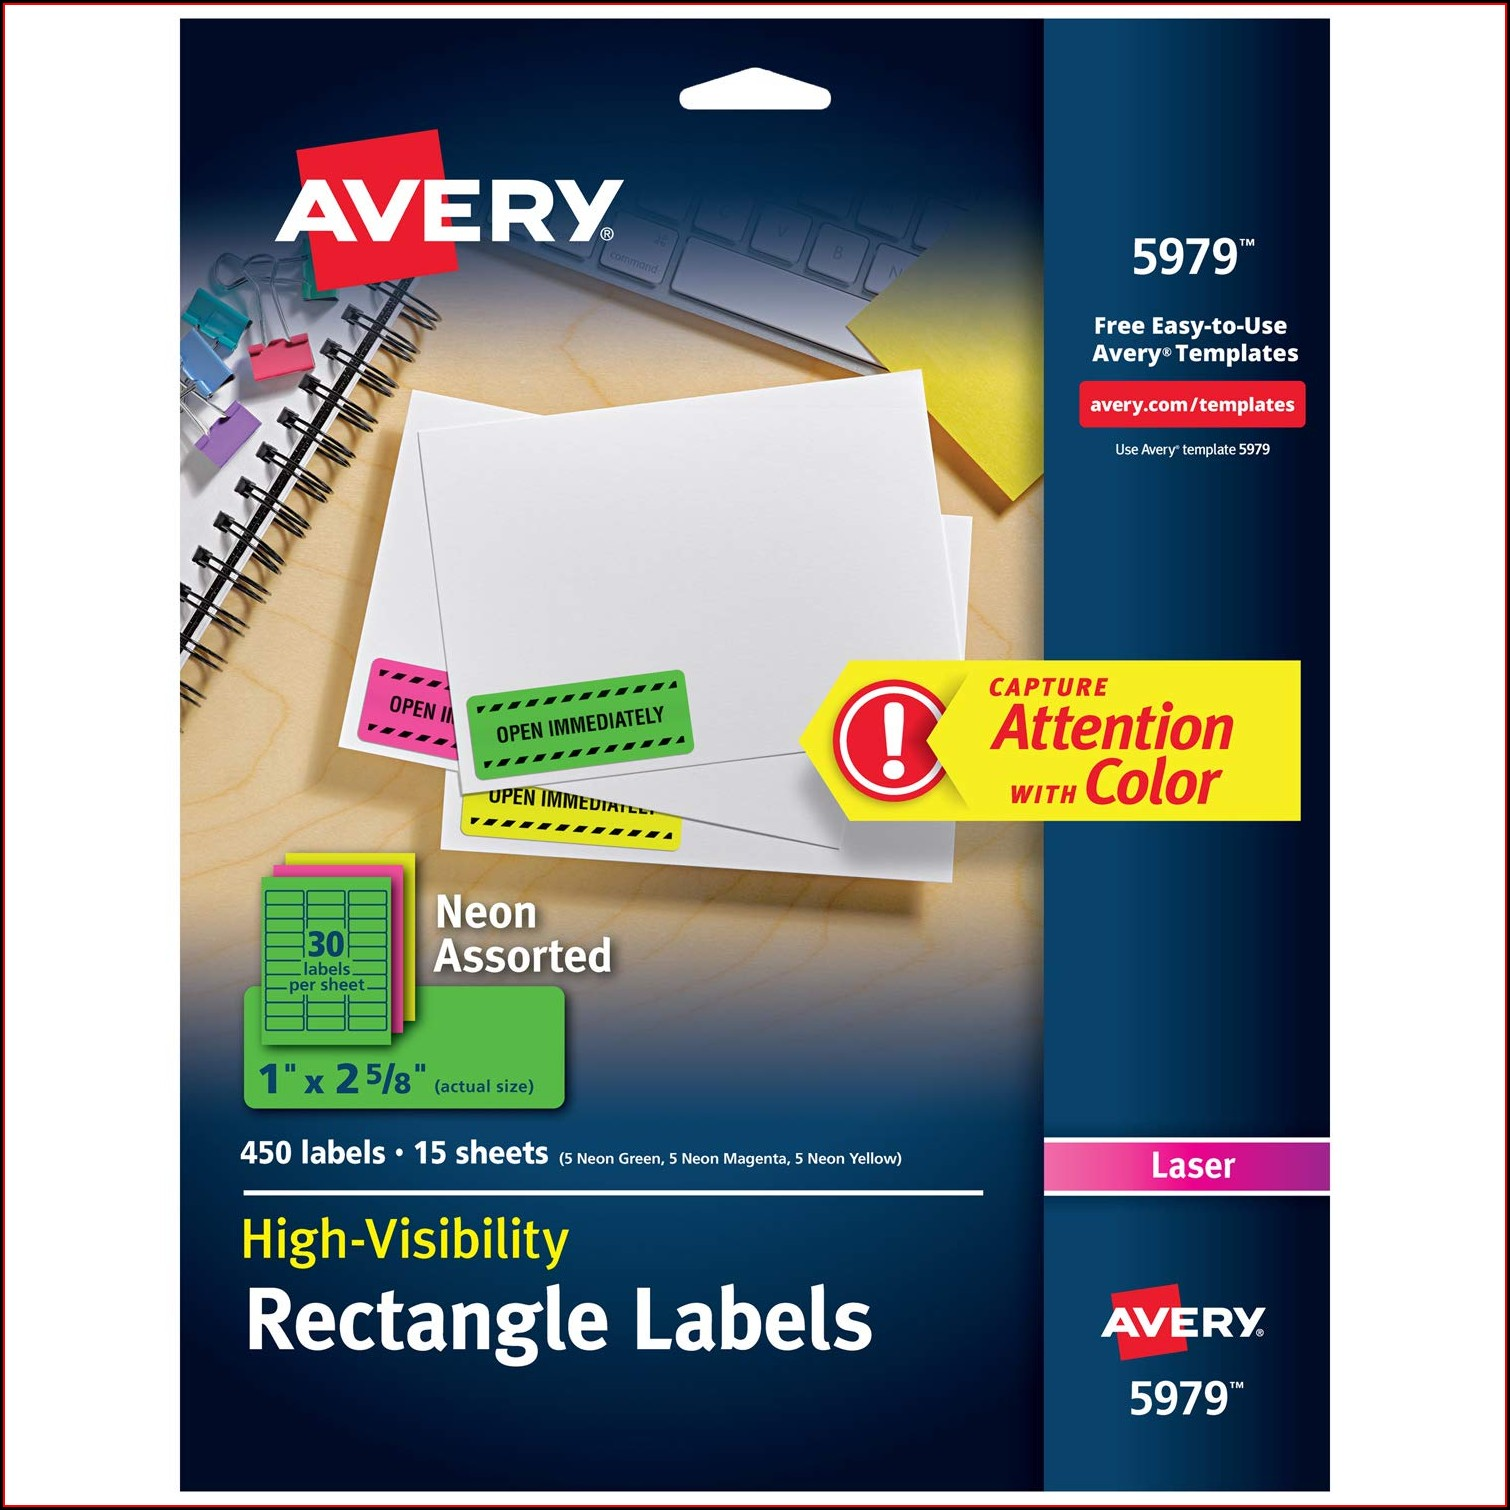 Avery 4x5 Label Template Number